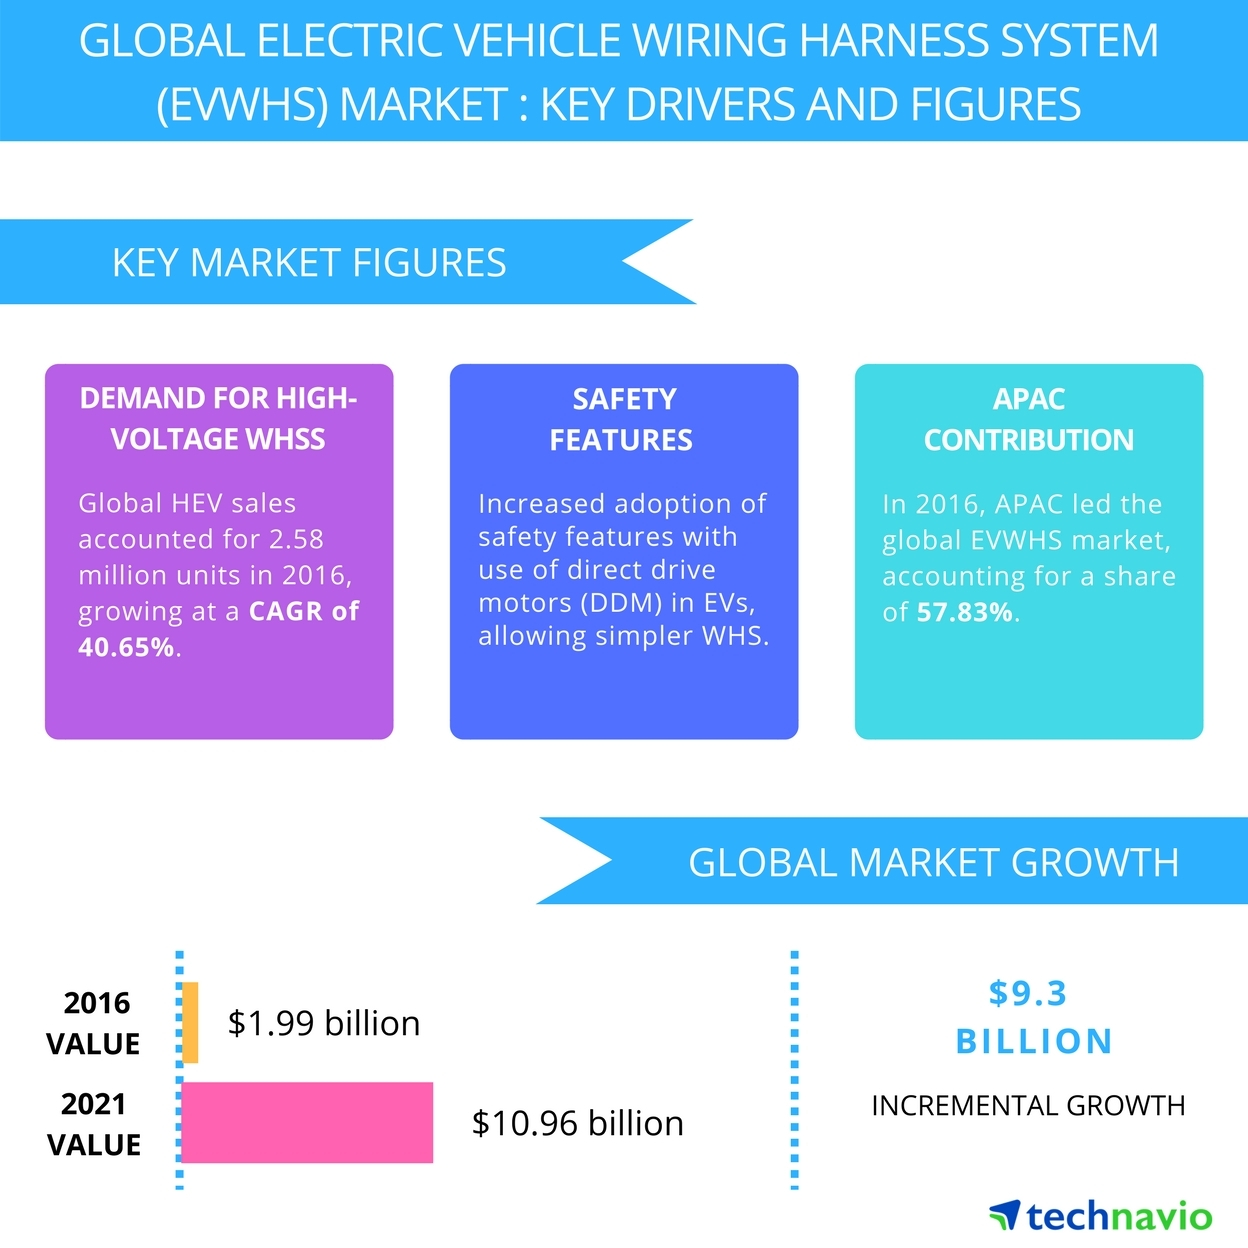 System Wiring Harness Diagram Hub Racing Electric Vehicle Market Trends And Drivers Sicass